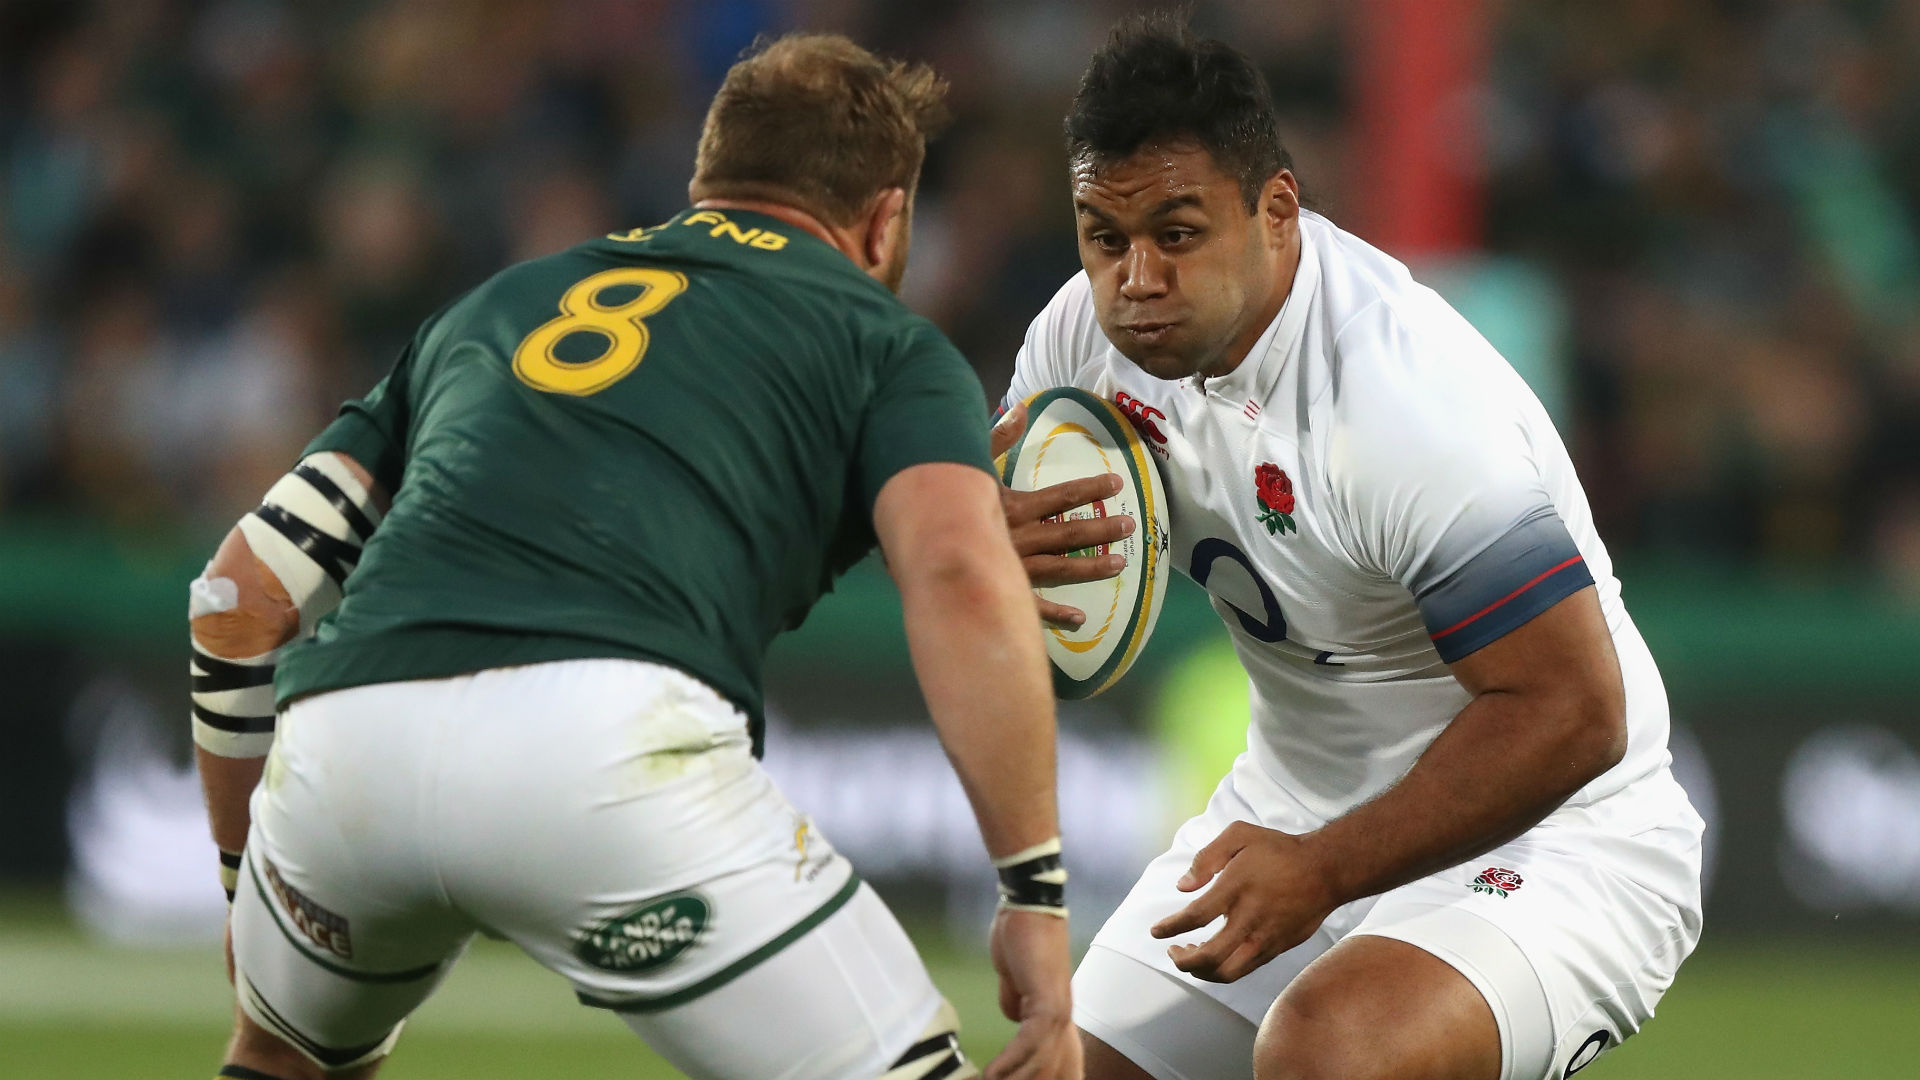 Rugby World Cup 2019: England star Vunipola tells Springboks to 'bring it on'